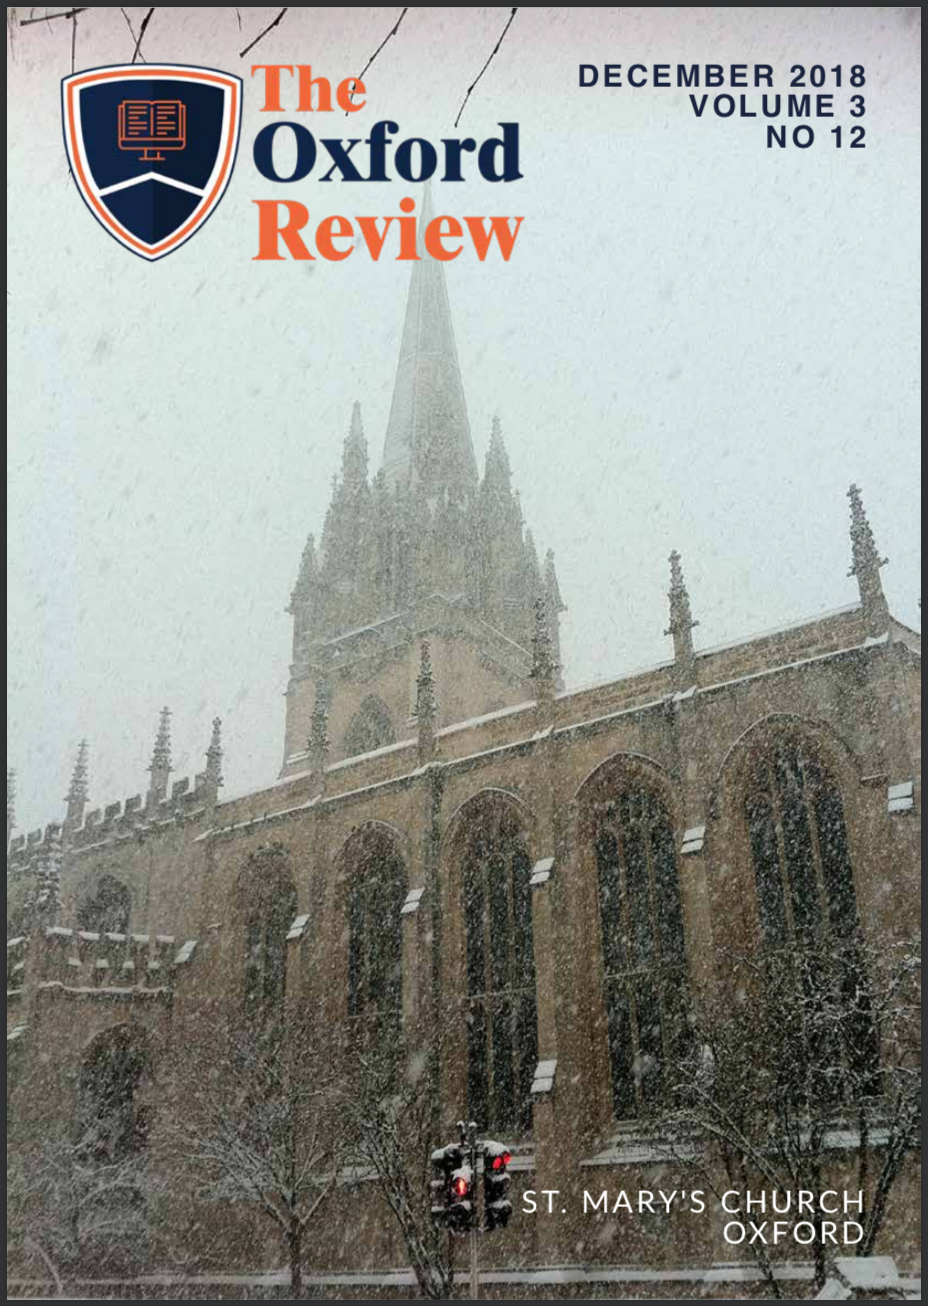 The Oxford Review Volume 3 No 12